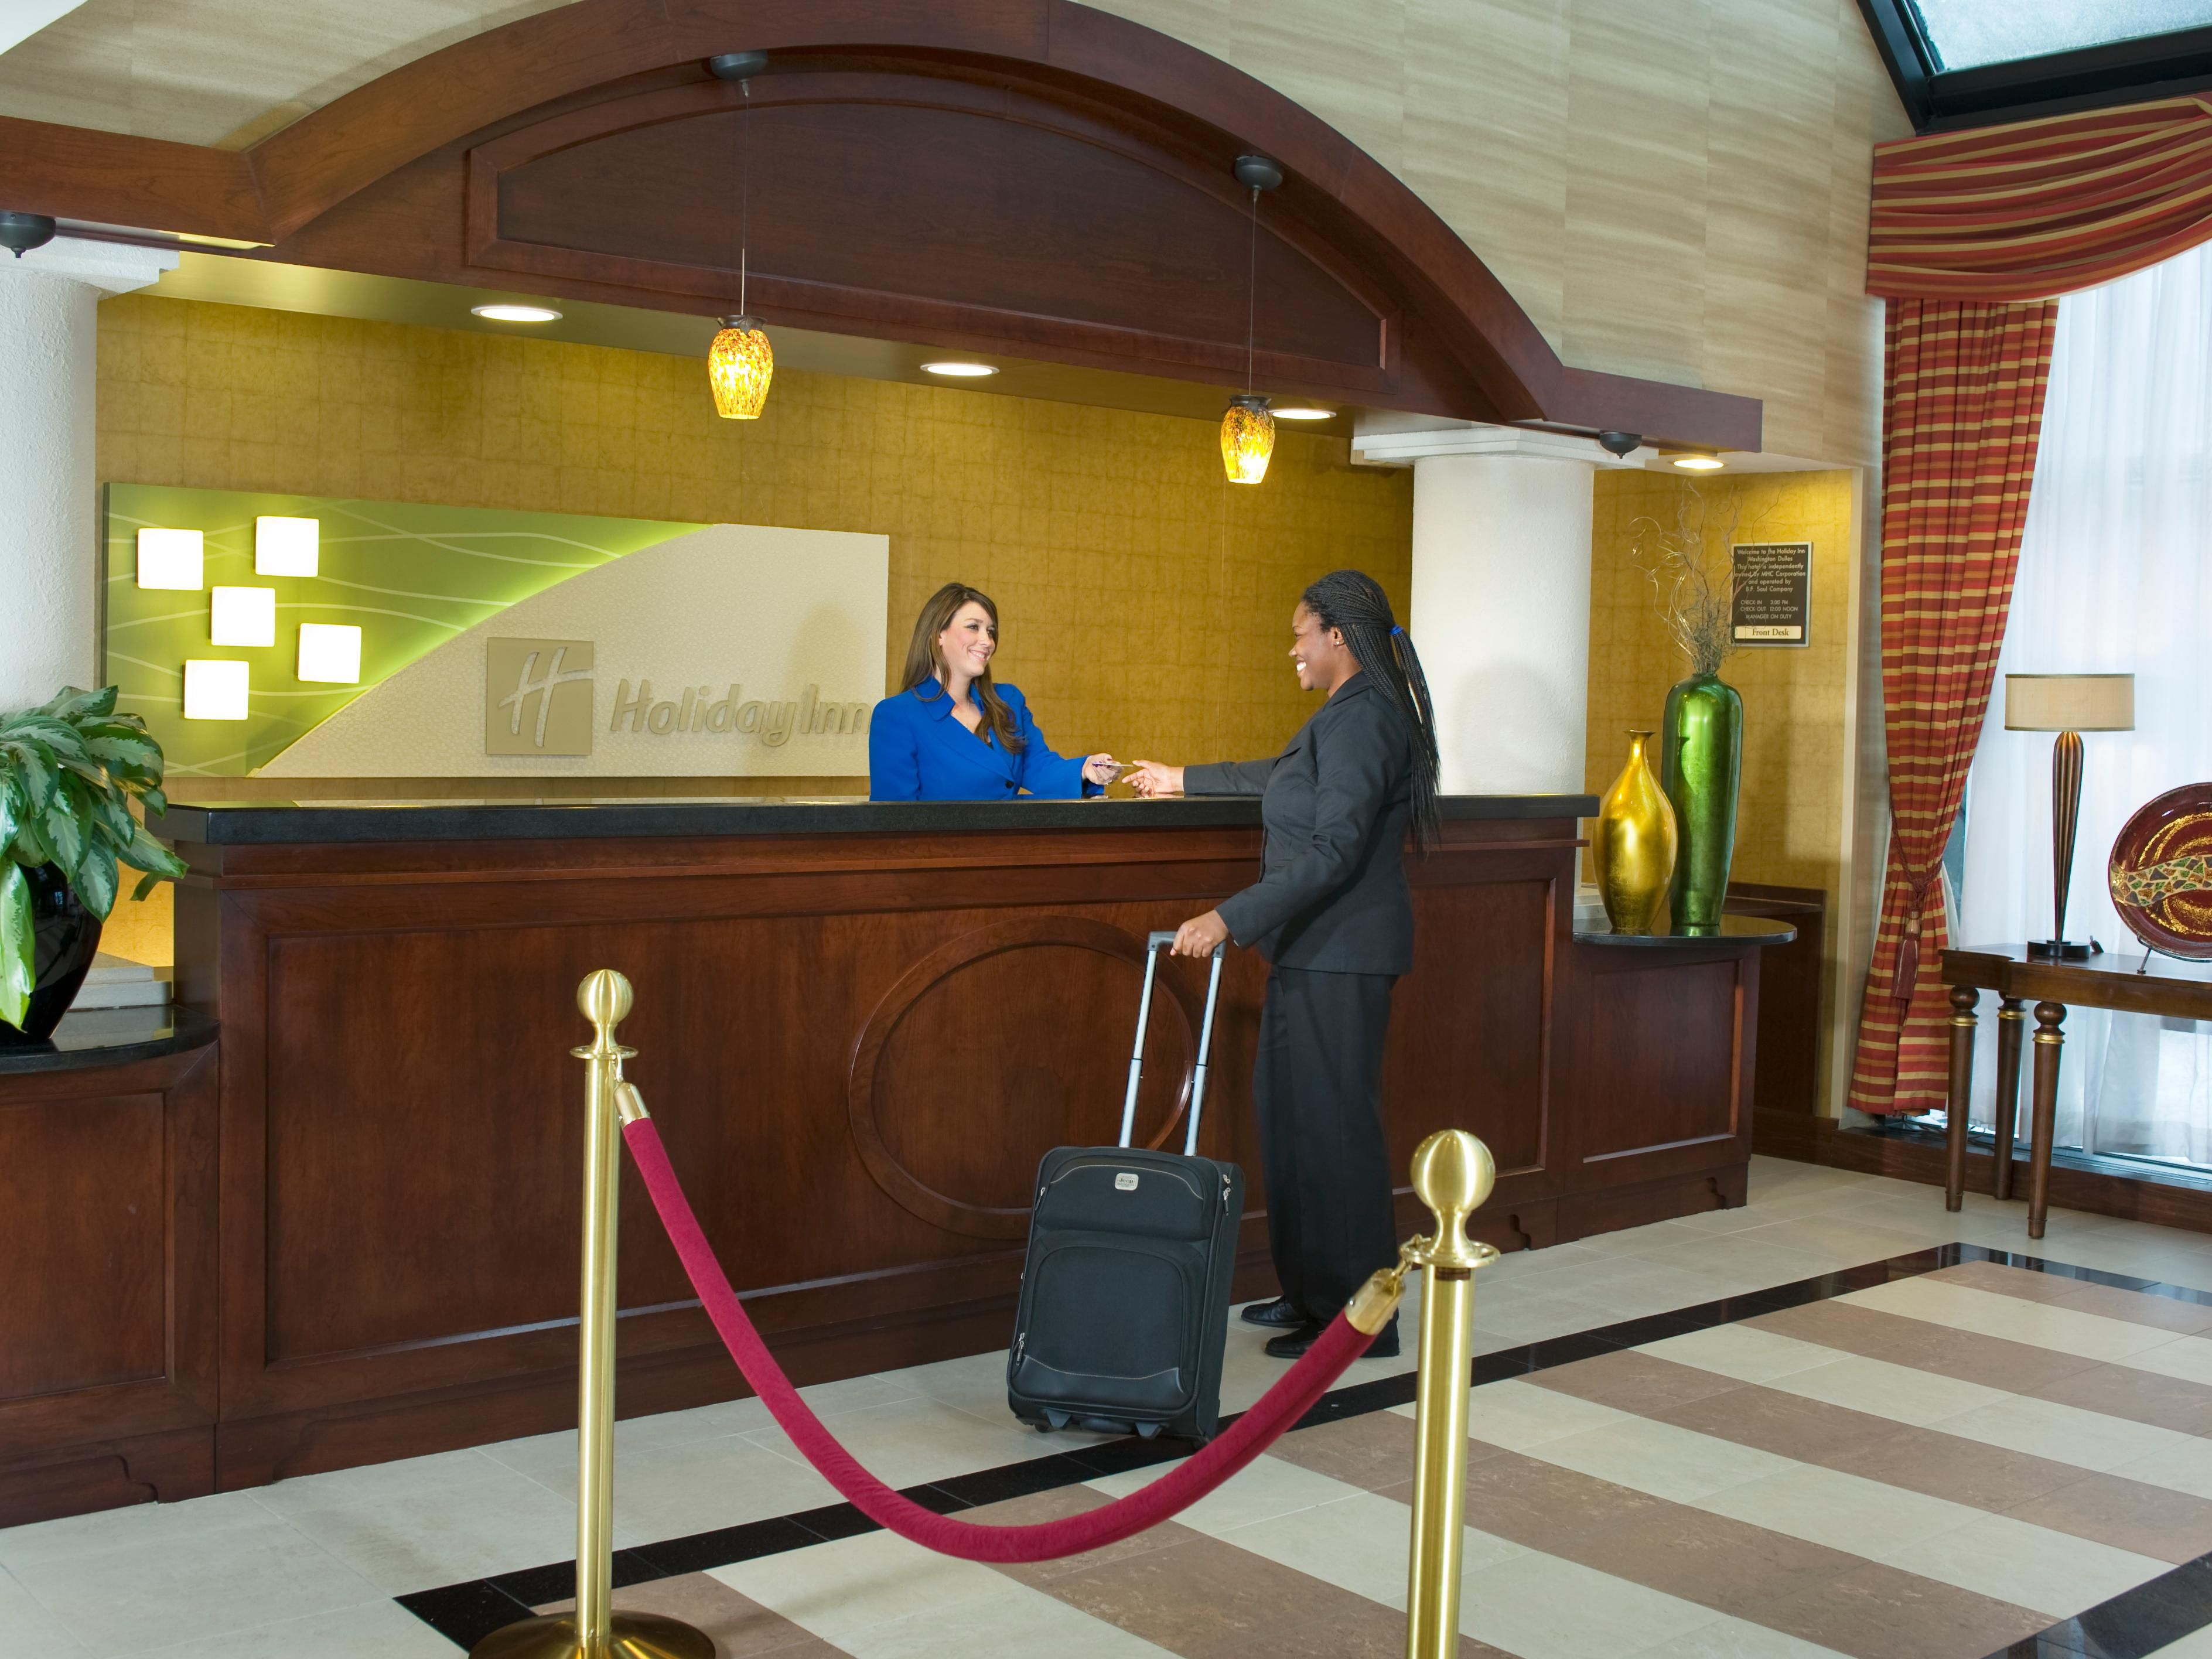 Our friendly Front Desk staff will welcome you with a smile